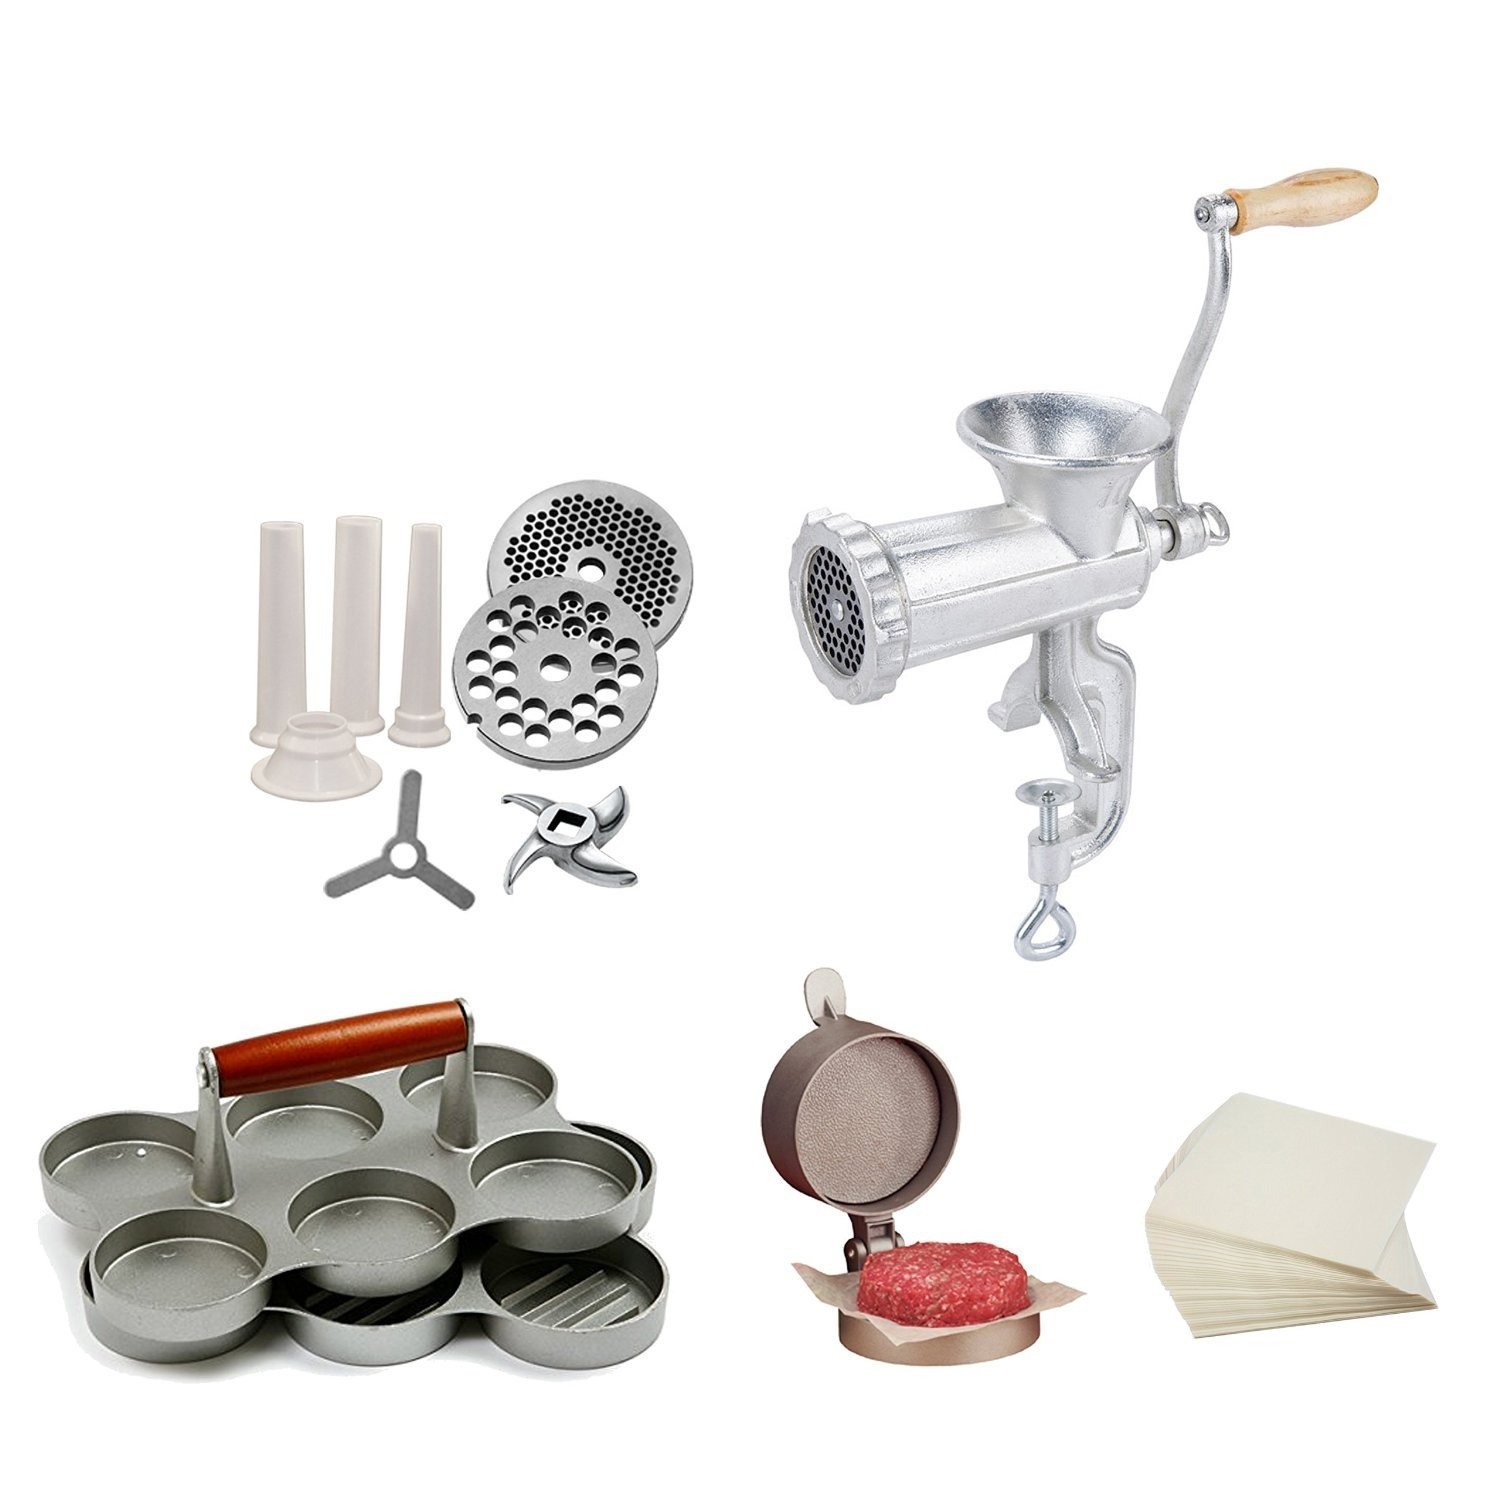 TigerChef Complete Burger Maker and Sausage Stuffer Supplies Set